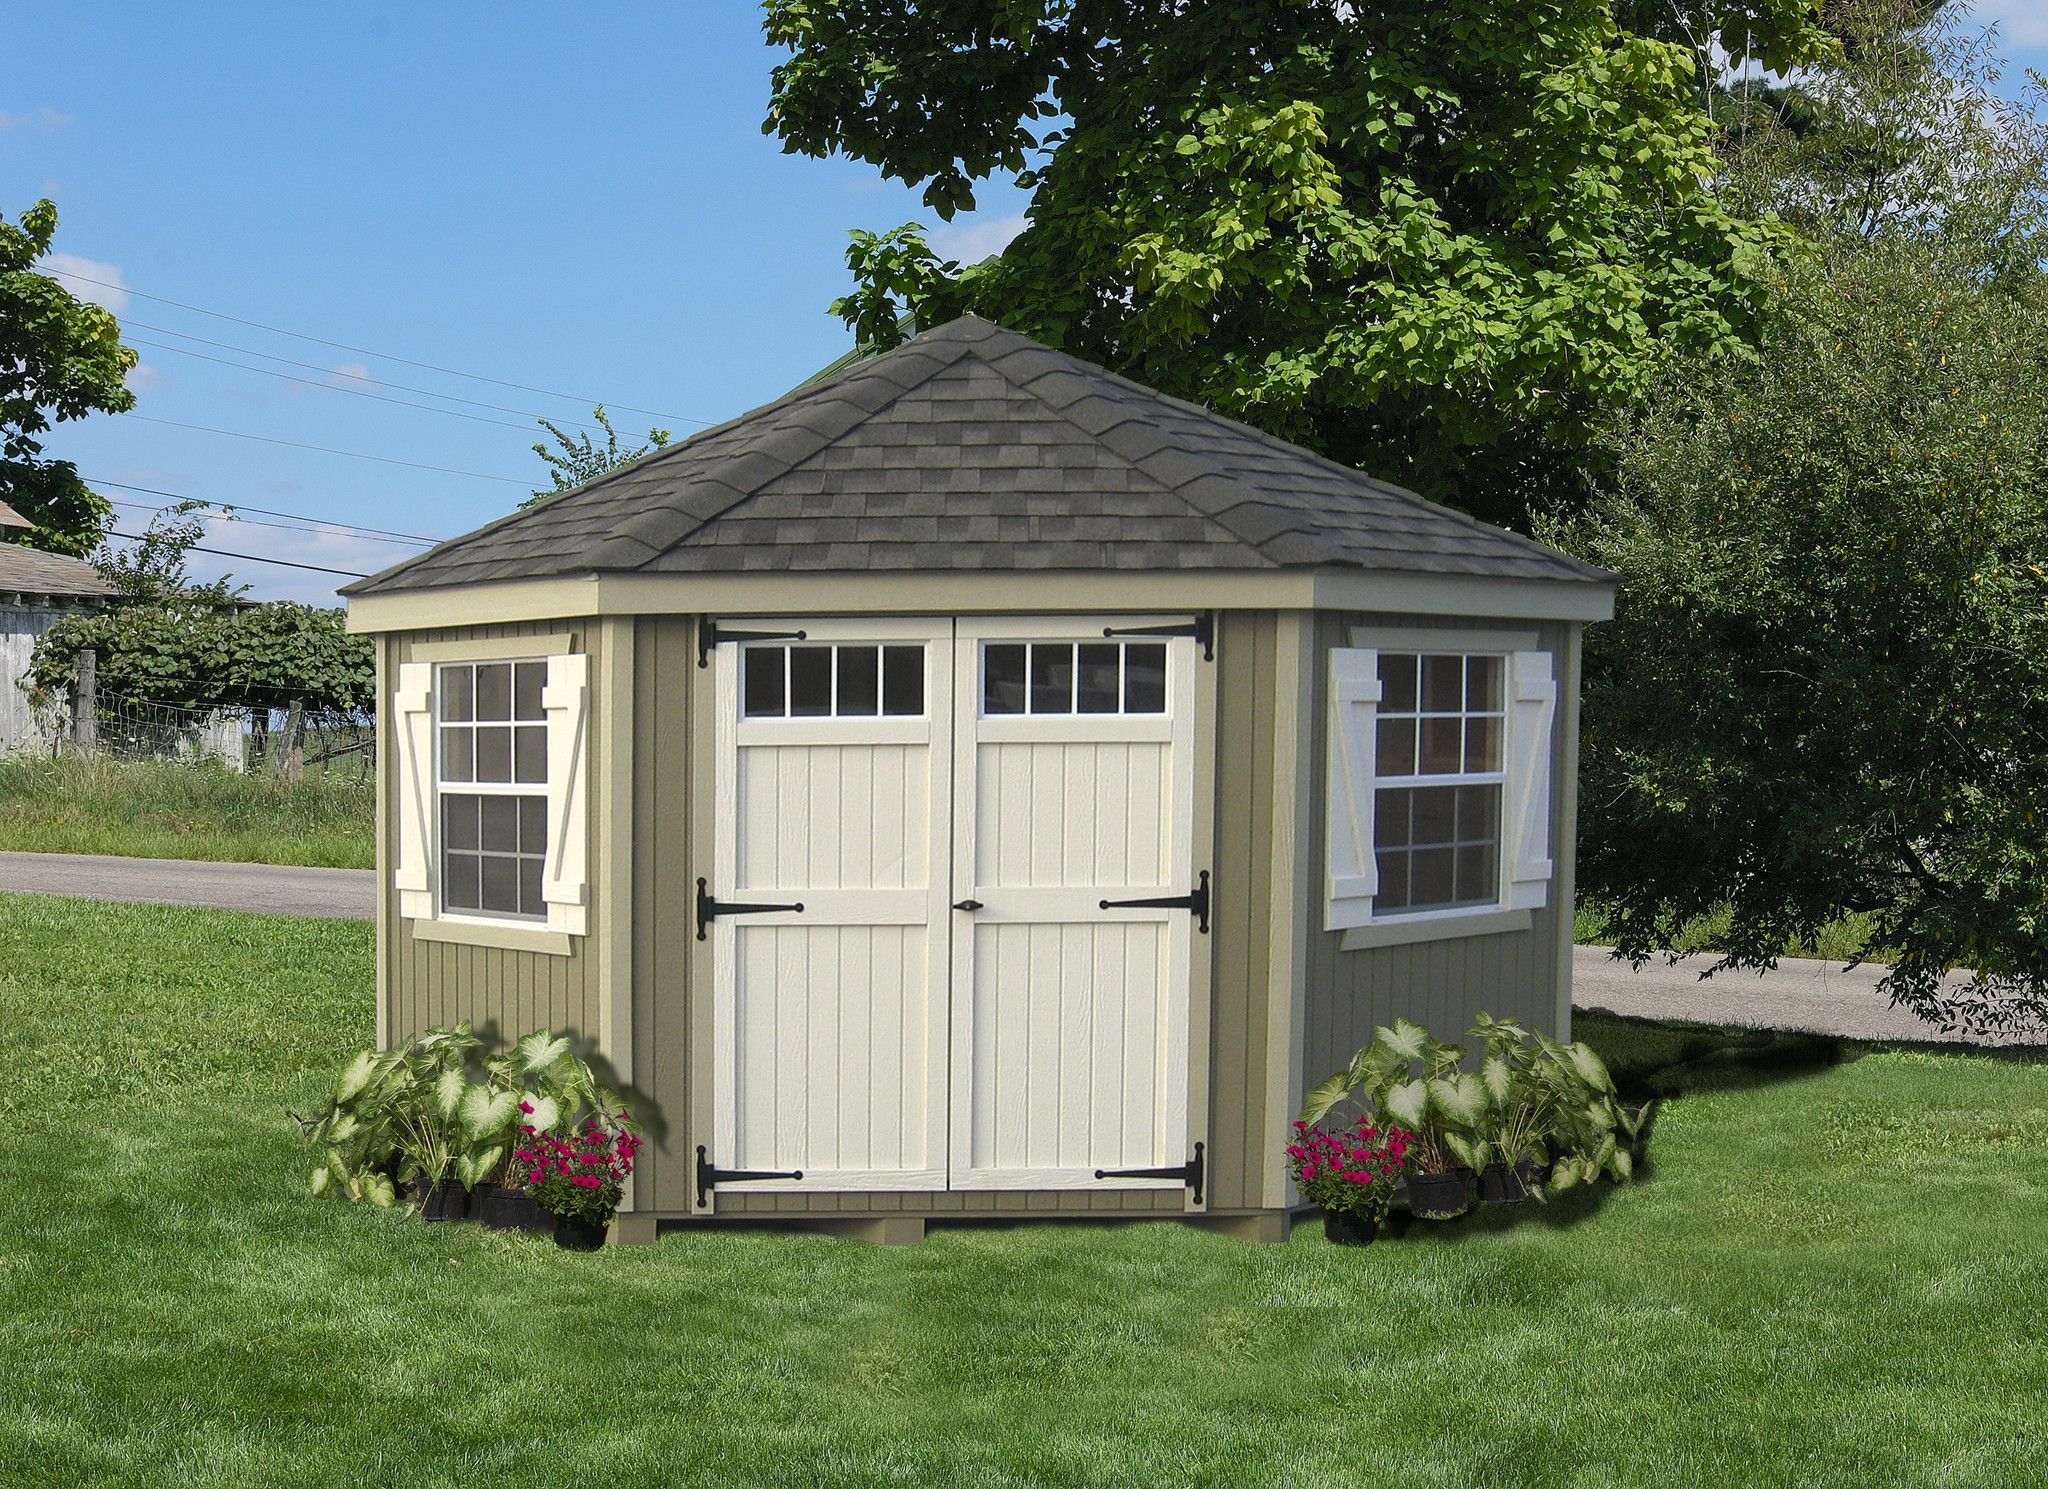 Little Cottage 5 Sided Colonial Wooden Shed 10x10 Ft Panelized Diy Kit Ready To Paint Shed Landscaping Corner Sheds Sheds For Sale